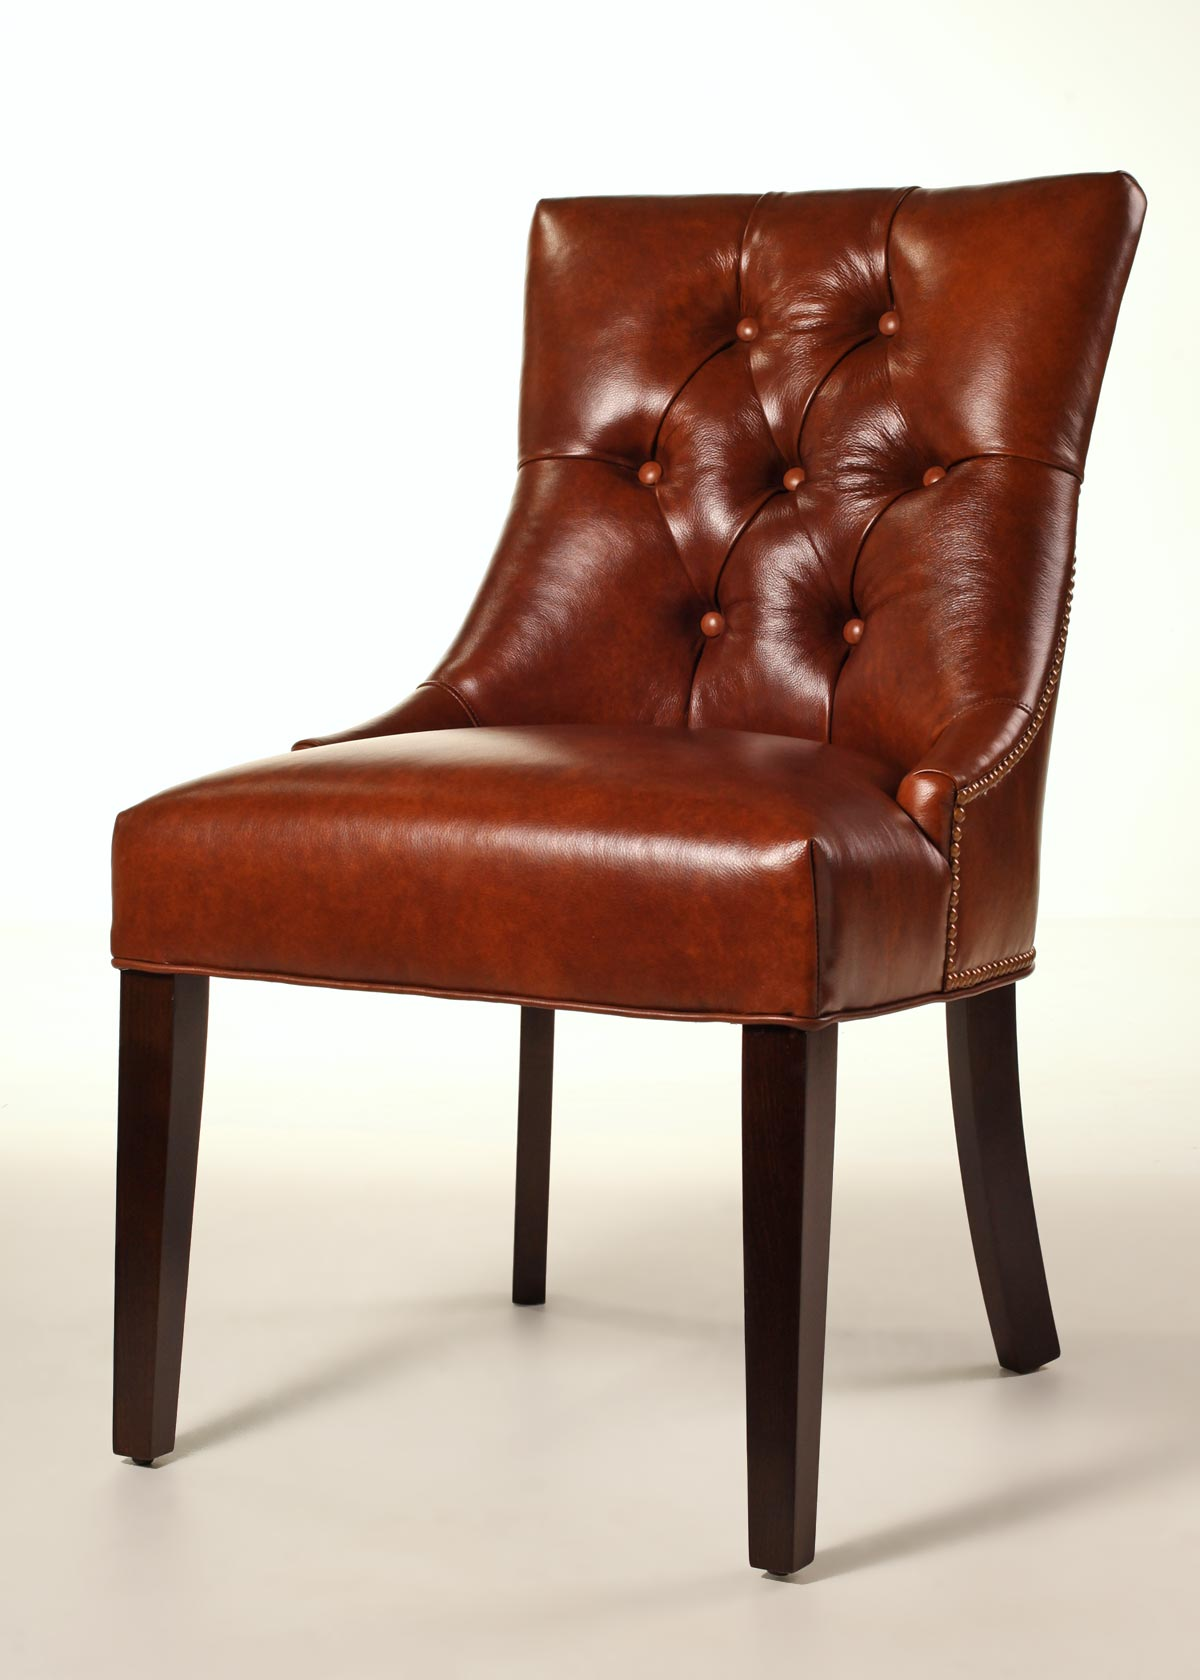 fenwick leather dining chair. Black Bedroom Furniture Sets. Home Design Ideas